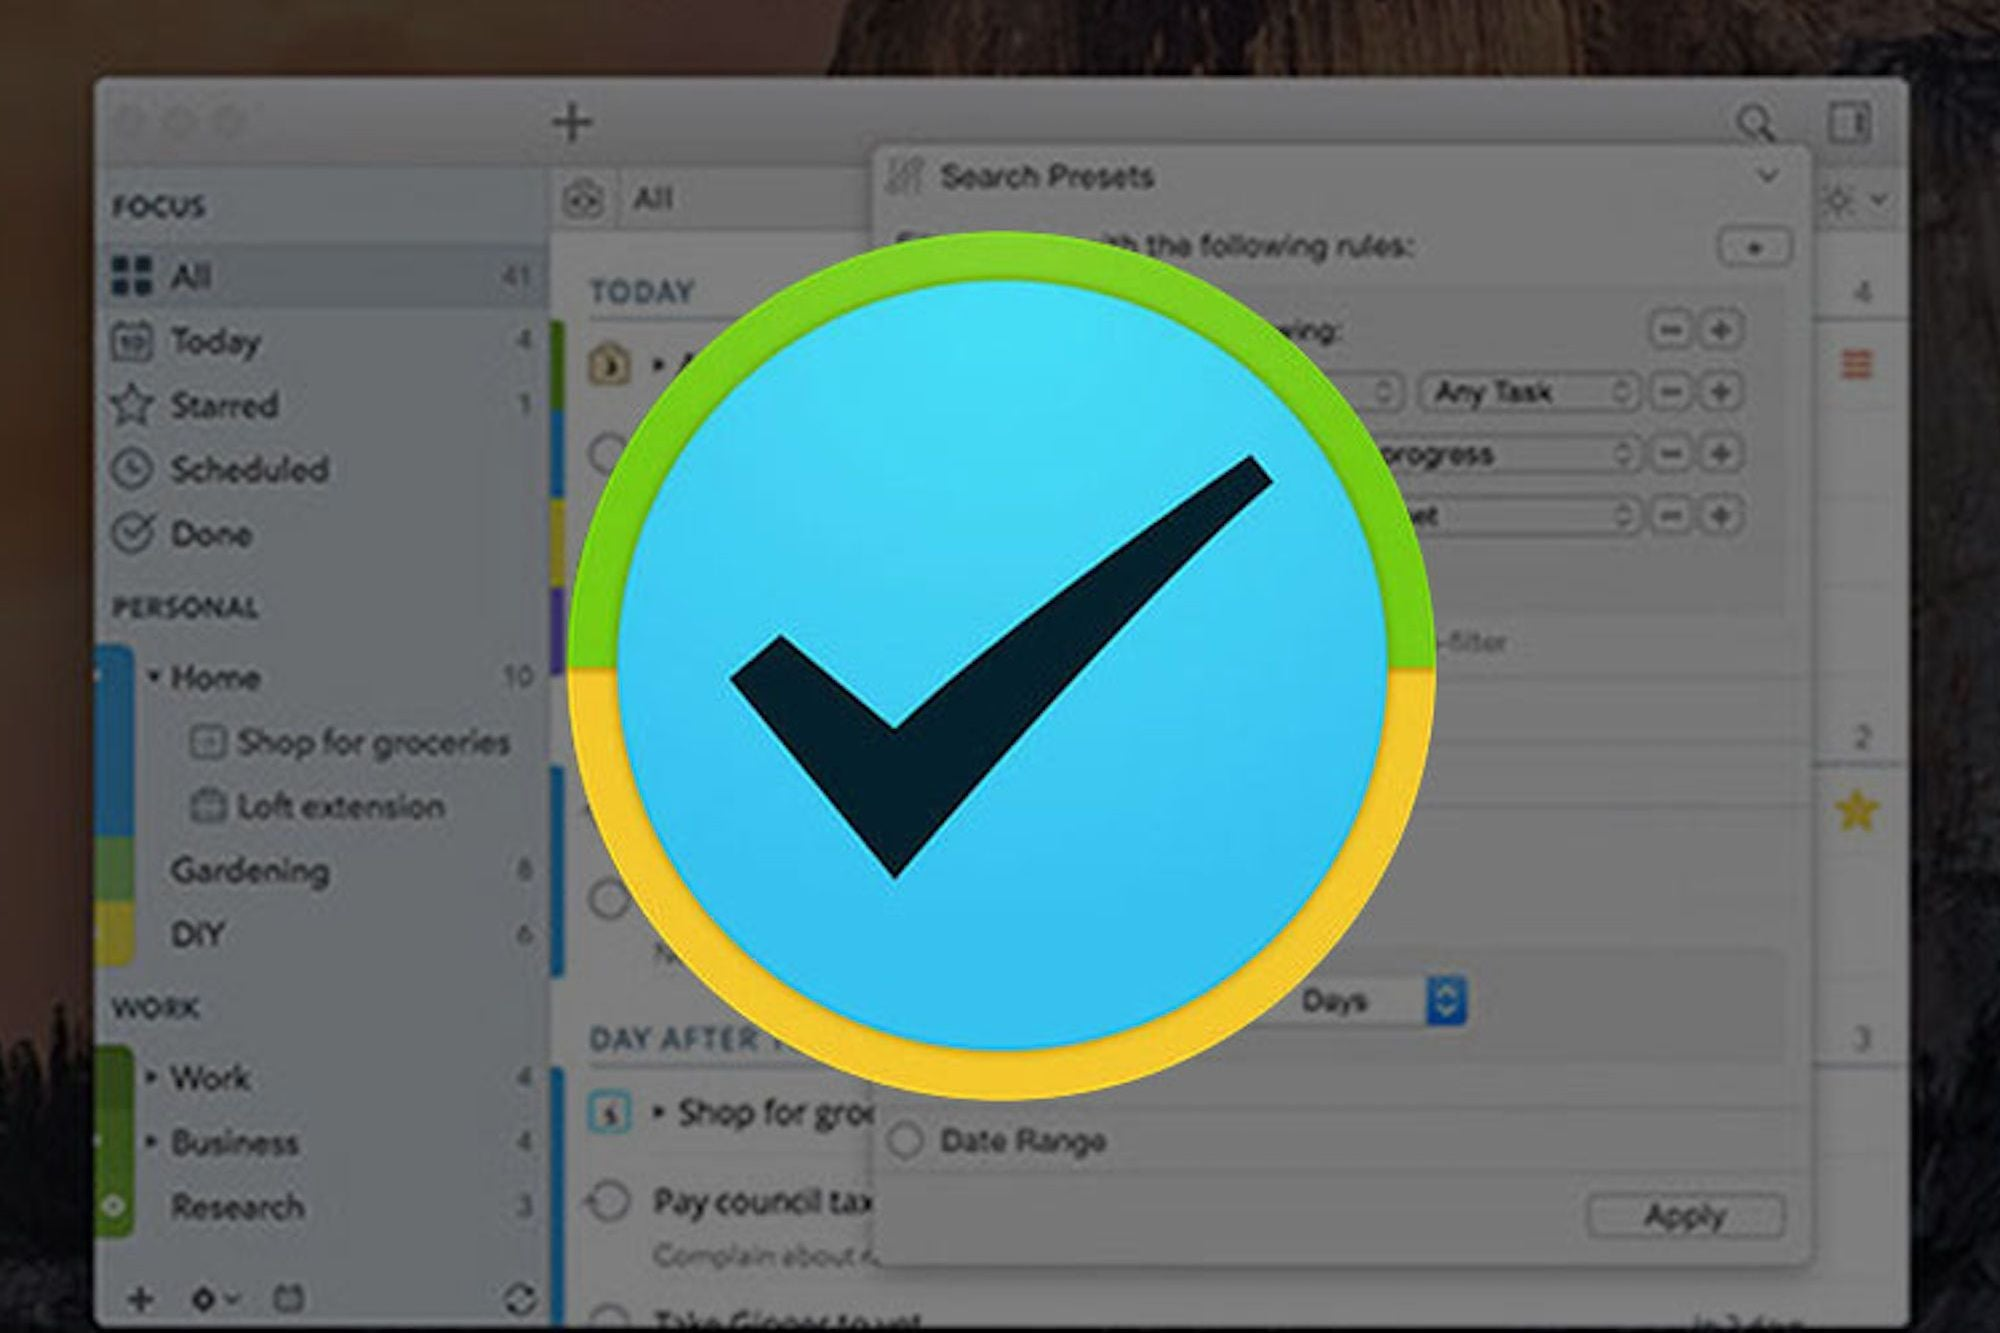 QnA VBage Tackle Your To-Do List With This Award-Winning Mac App